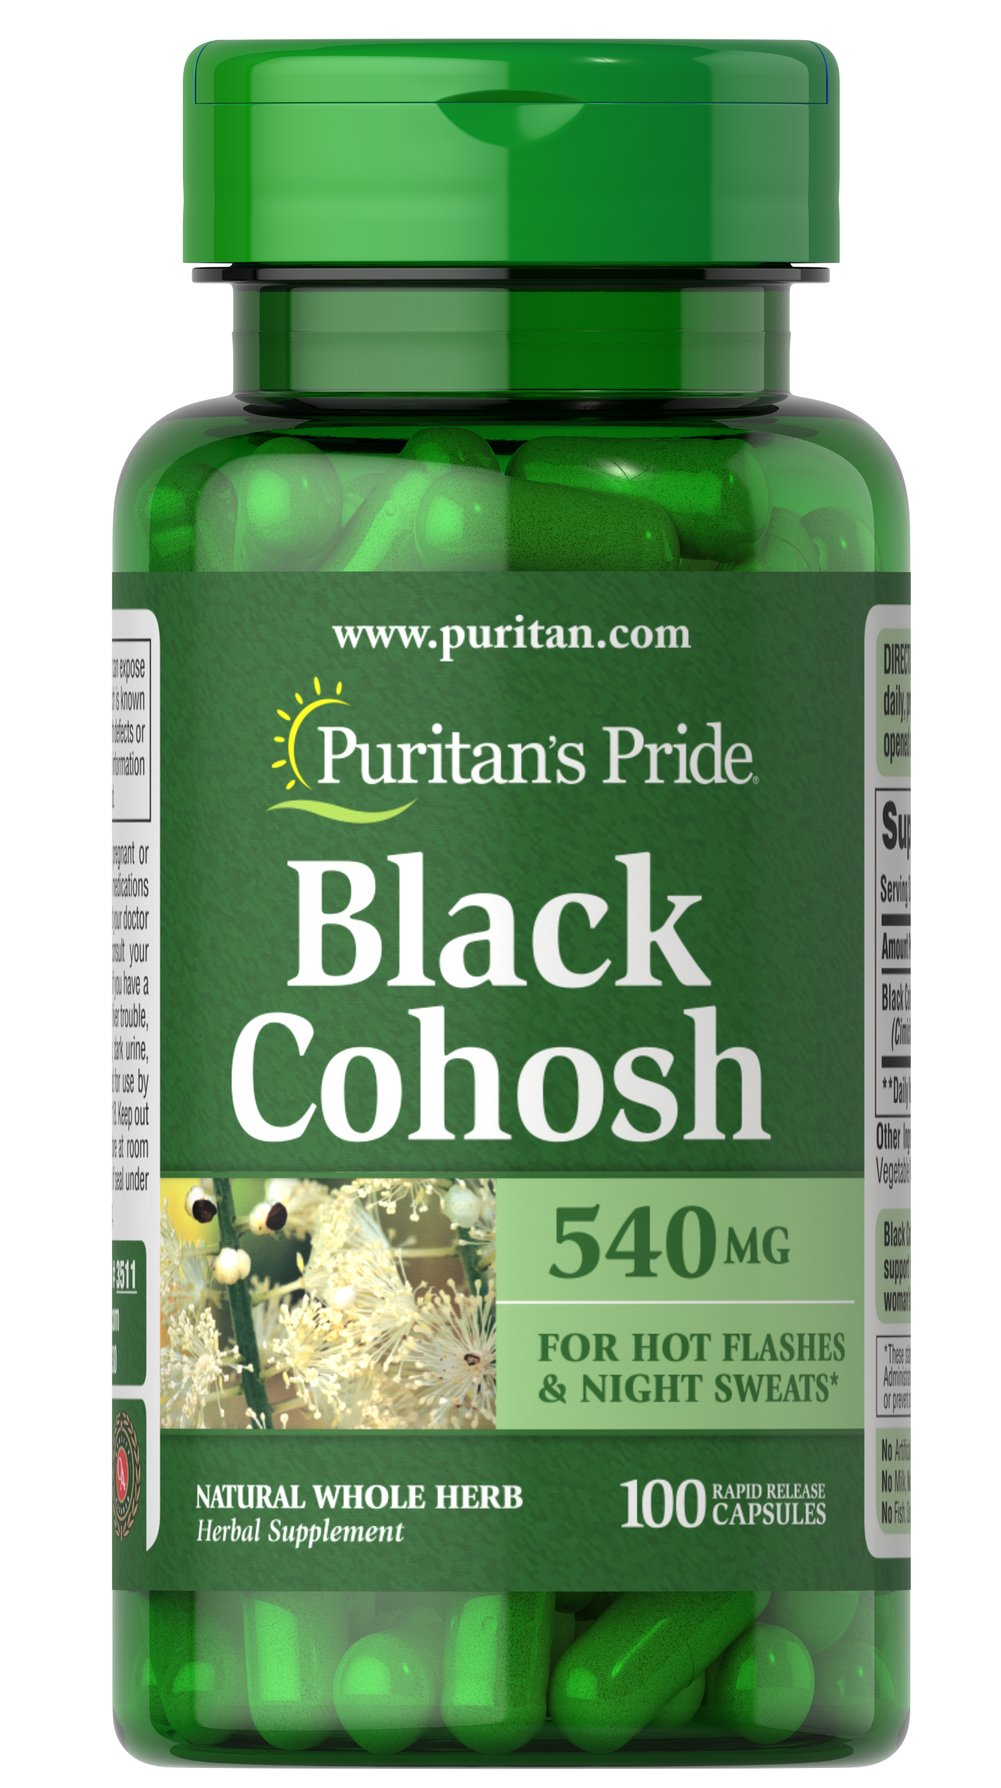 Black Cohosh 540 mg <p>Supports Menopausal Health**</p><p> As one of the leading herbs for women's health, Black Cohosh is famous for its ability to promote menopausal health.** Black Cohosh helps support the physical changes that occur in a woman's body over time.**</p><p></p> 100 Capsules 540 mg $13.99